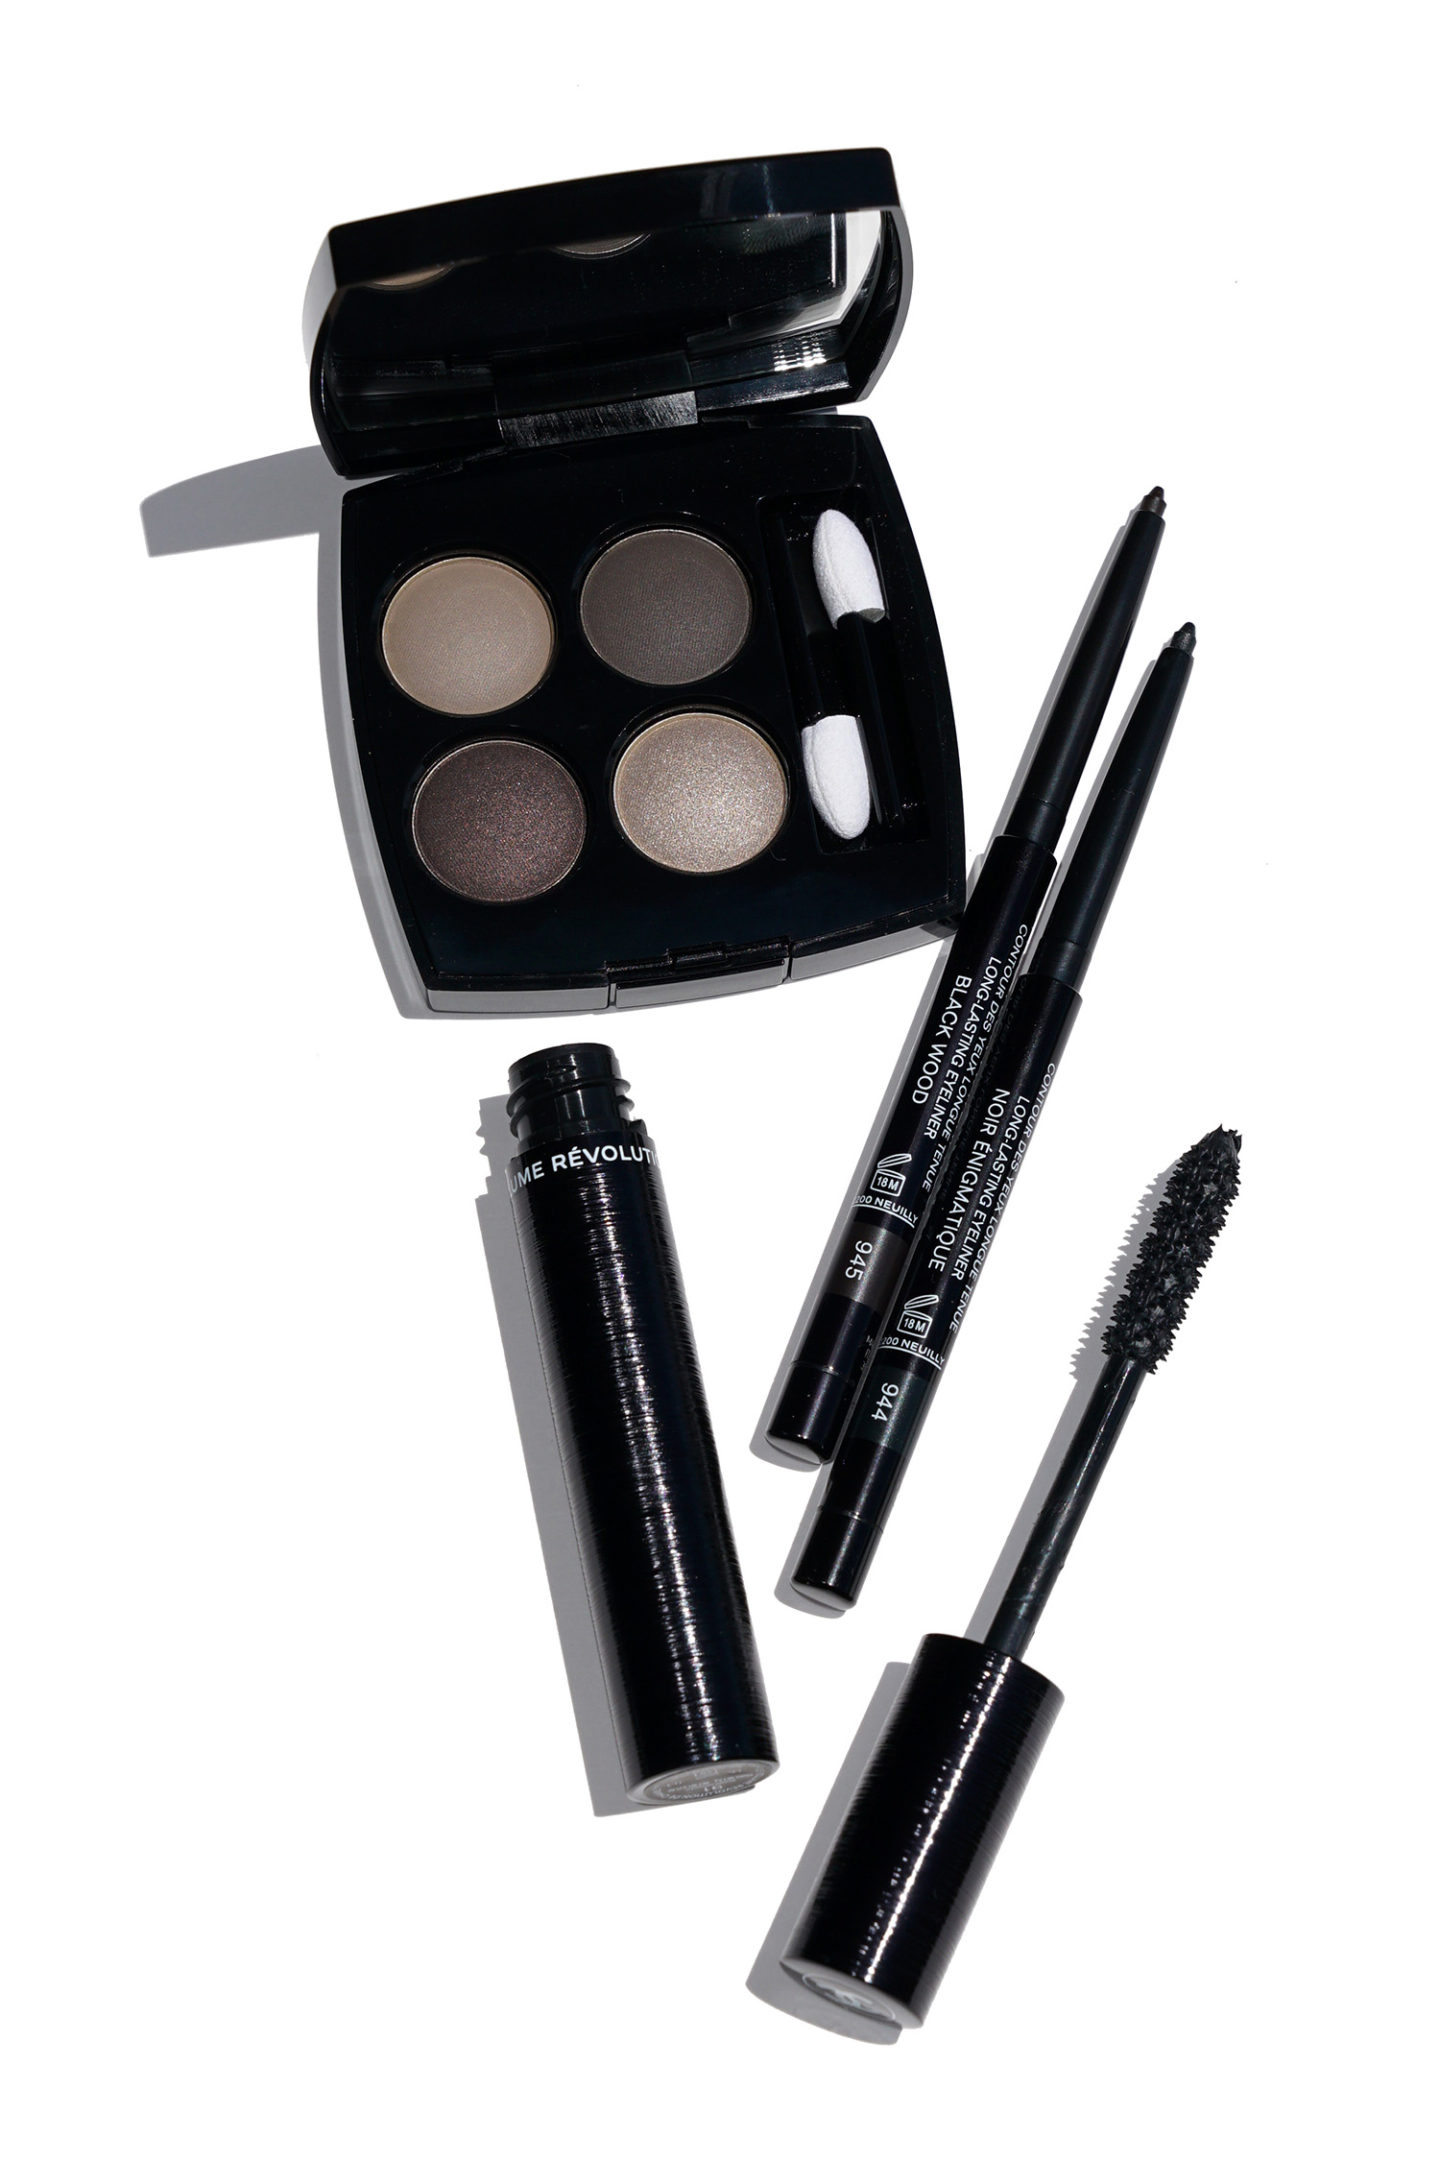 Chanel Blurry Grey, Noir Engimatique, Black Wood et Volcan Review